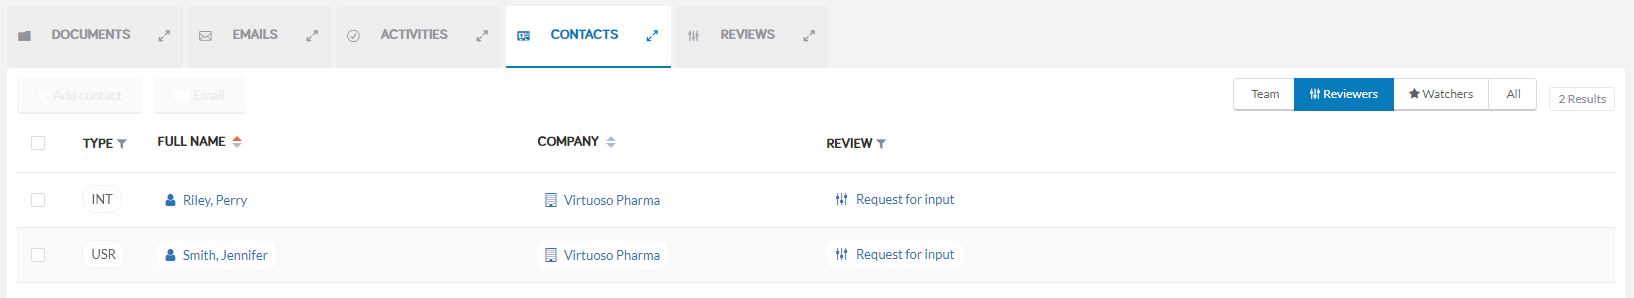 Reviewers_View.png